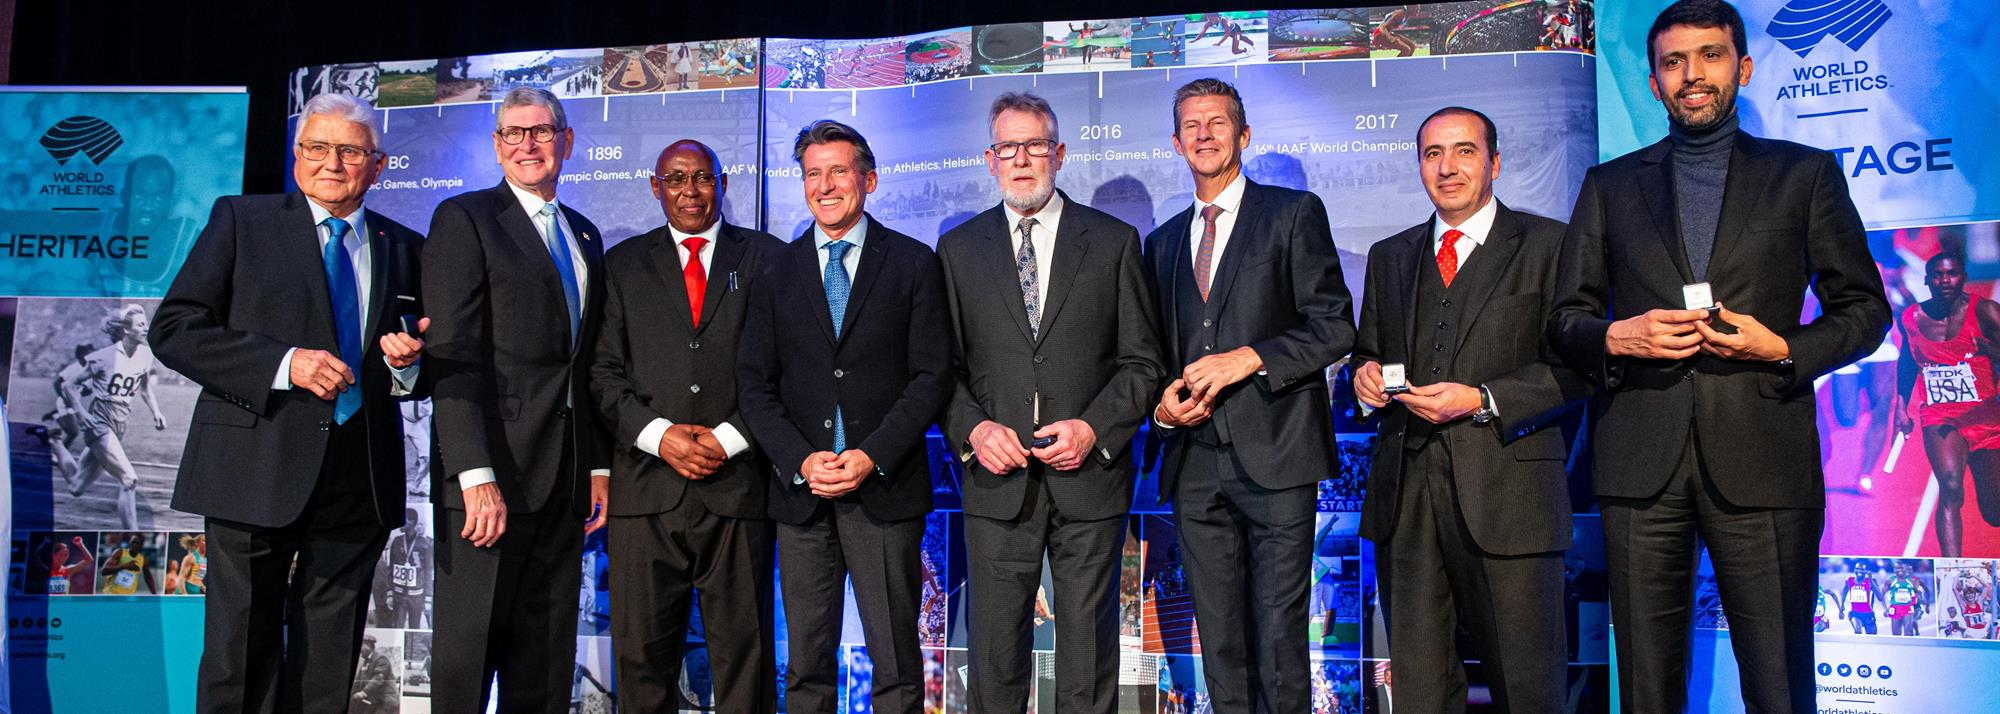 Bannister and Charles among the honourees at World Athletics Heritage Mile Night celebration